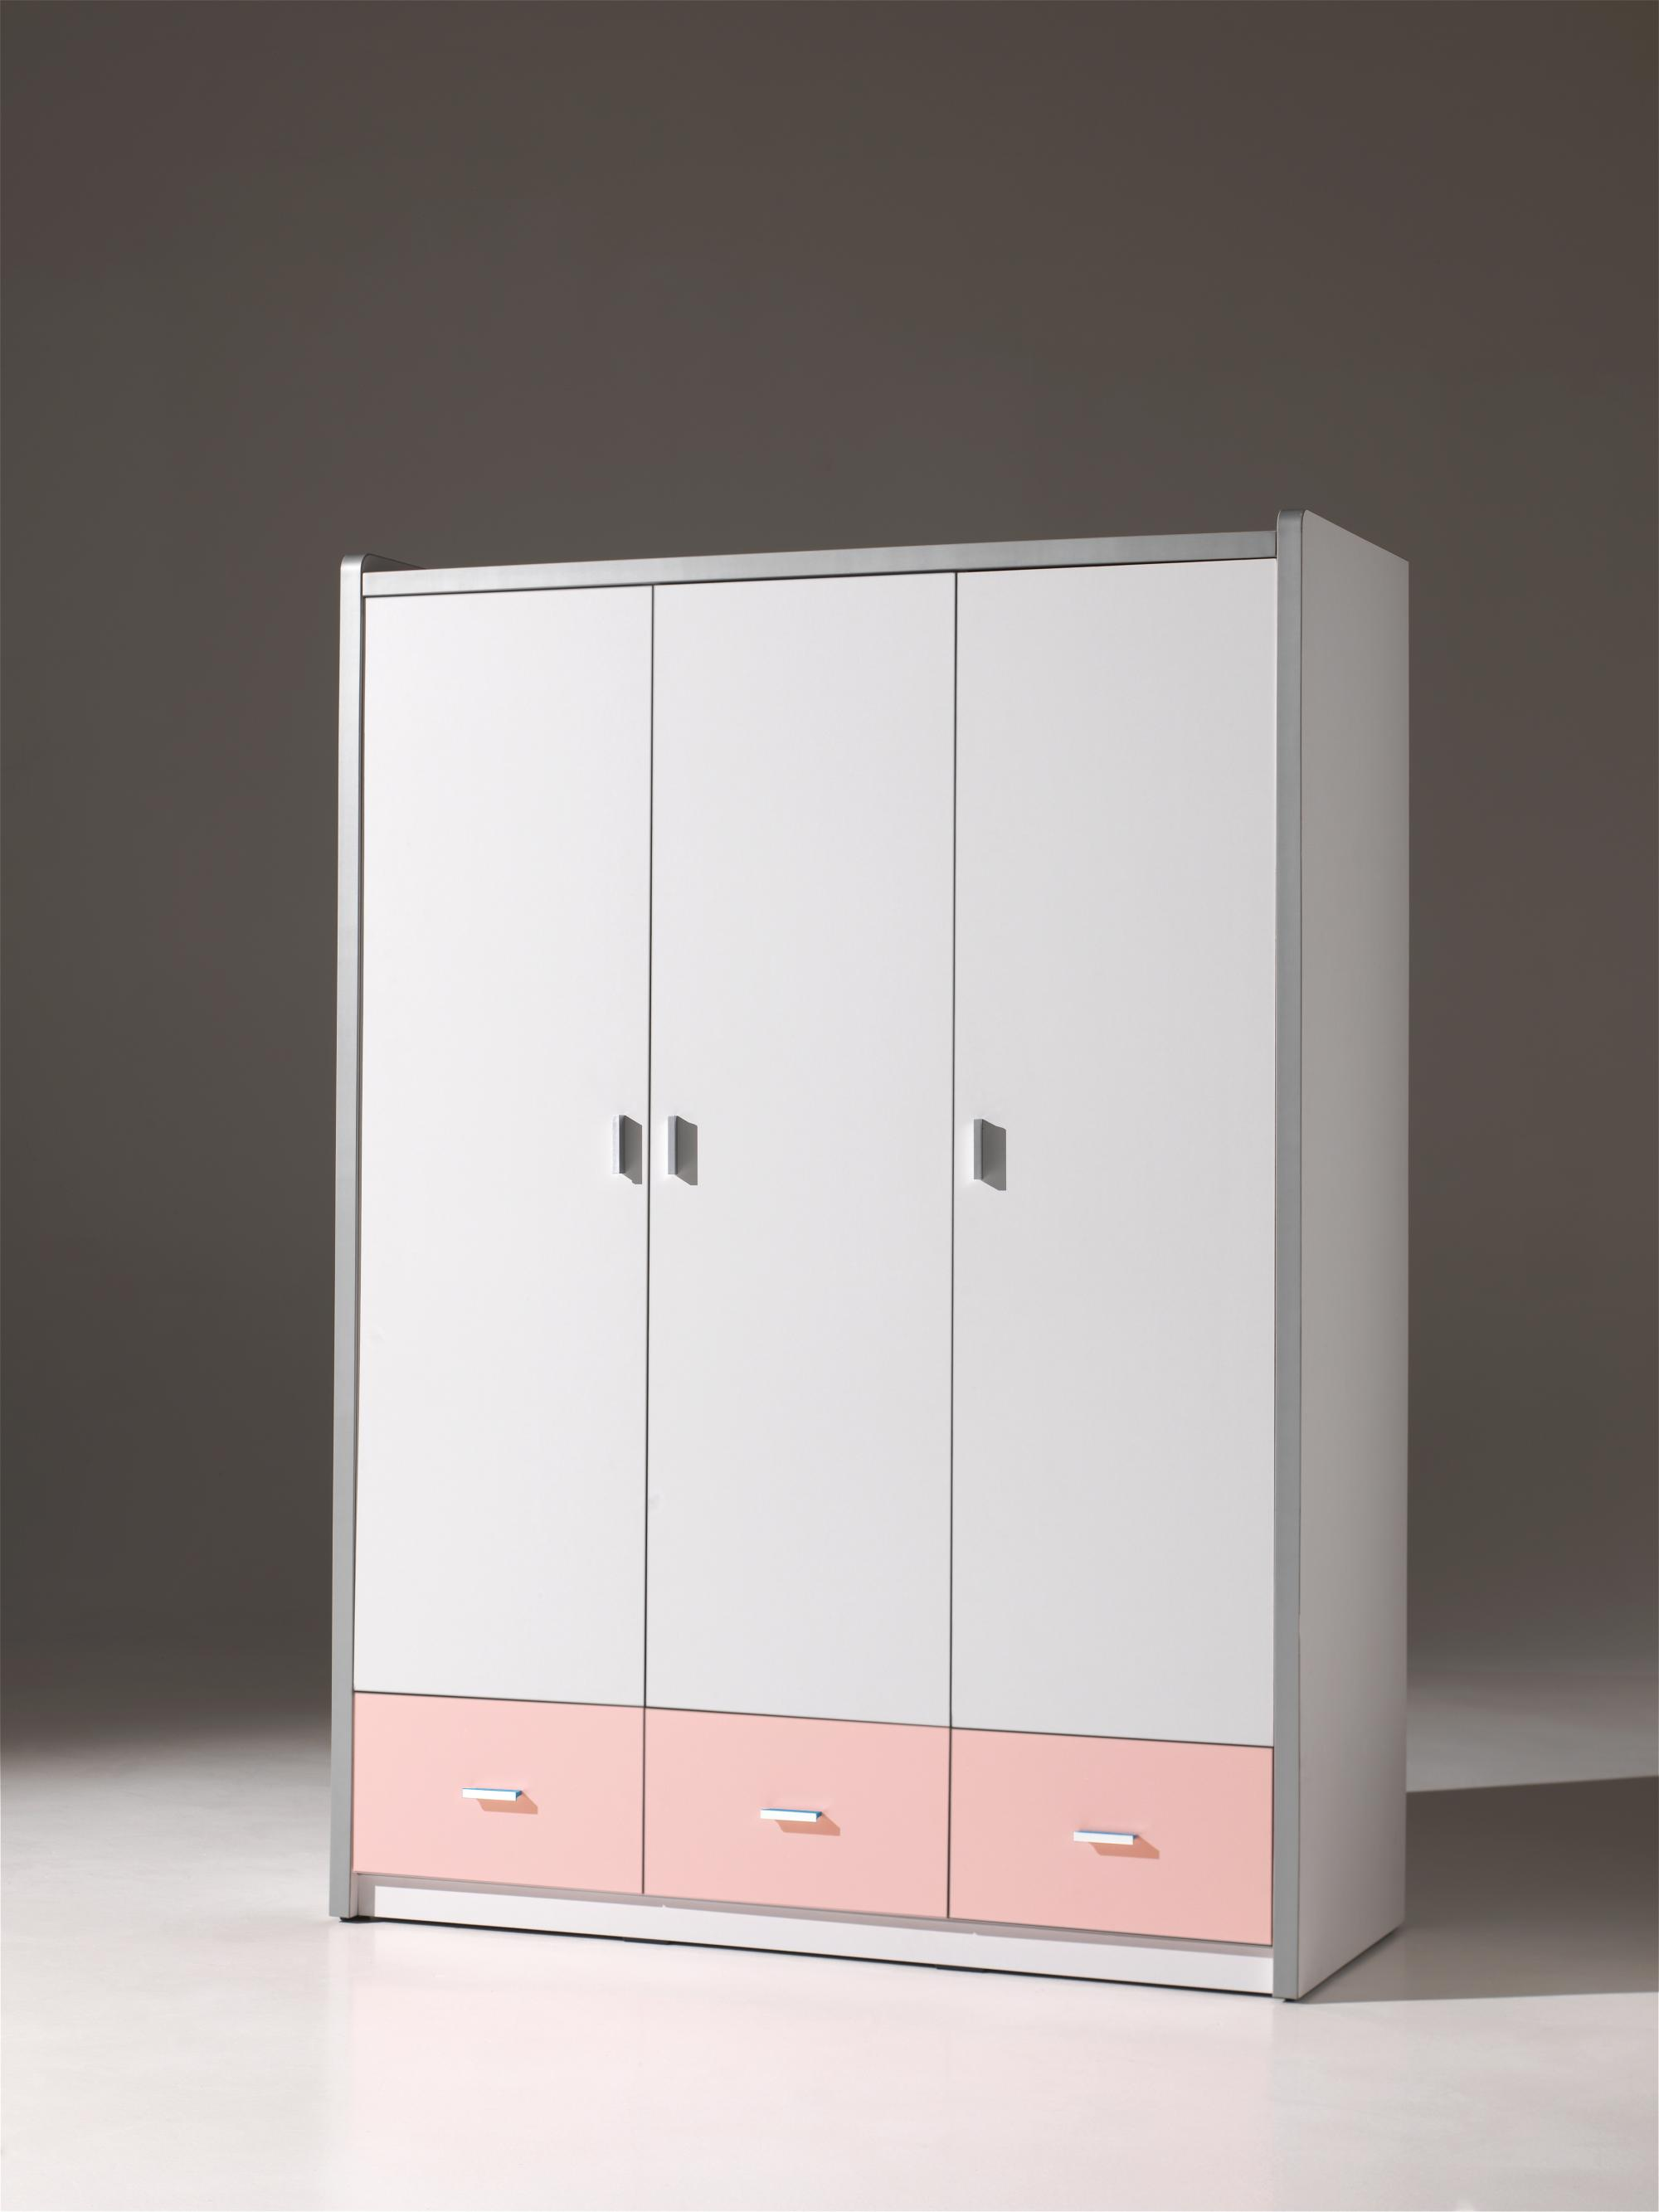 Armoire 3 portes contemporaine coloris blanc/rose Debby